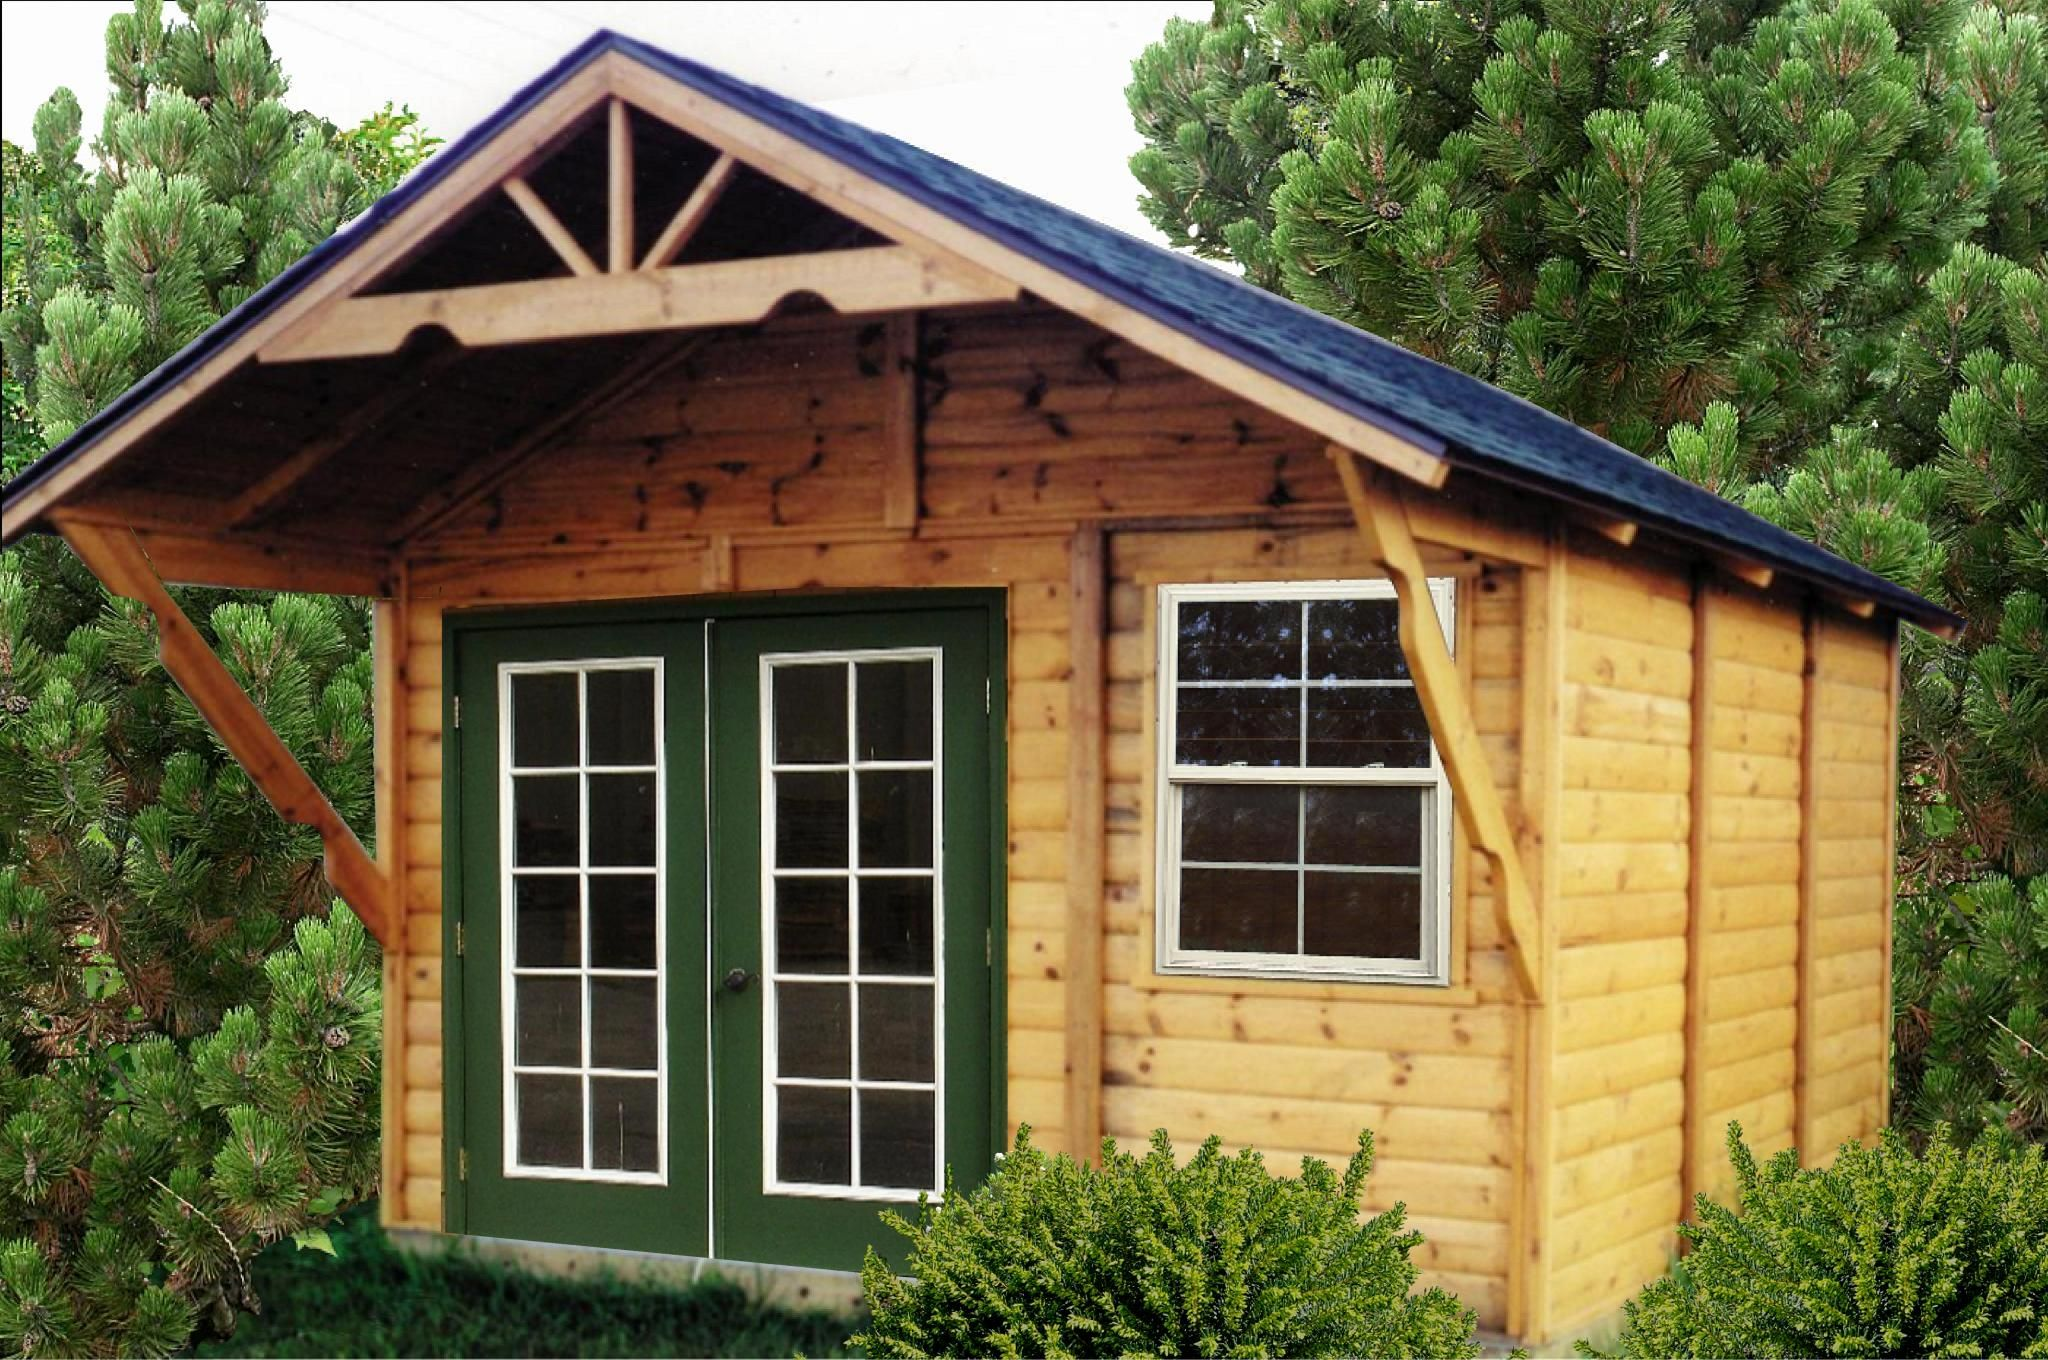 Garden shed ideas wooden storage shed plans home decoration and cabin anywhere - Small wood homes ...